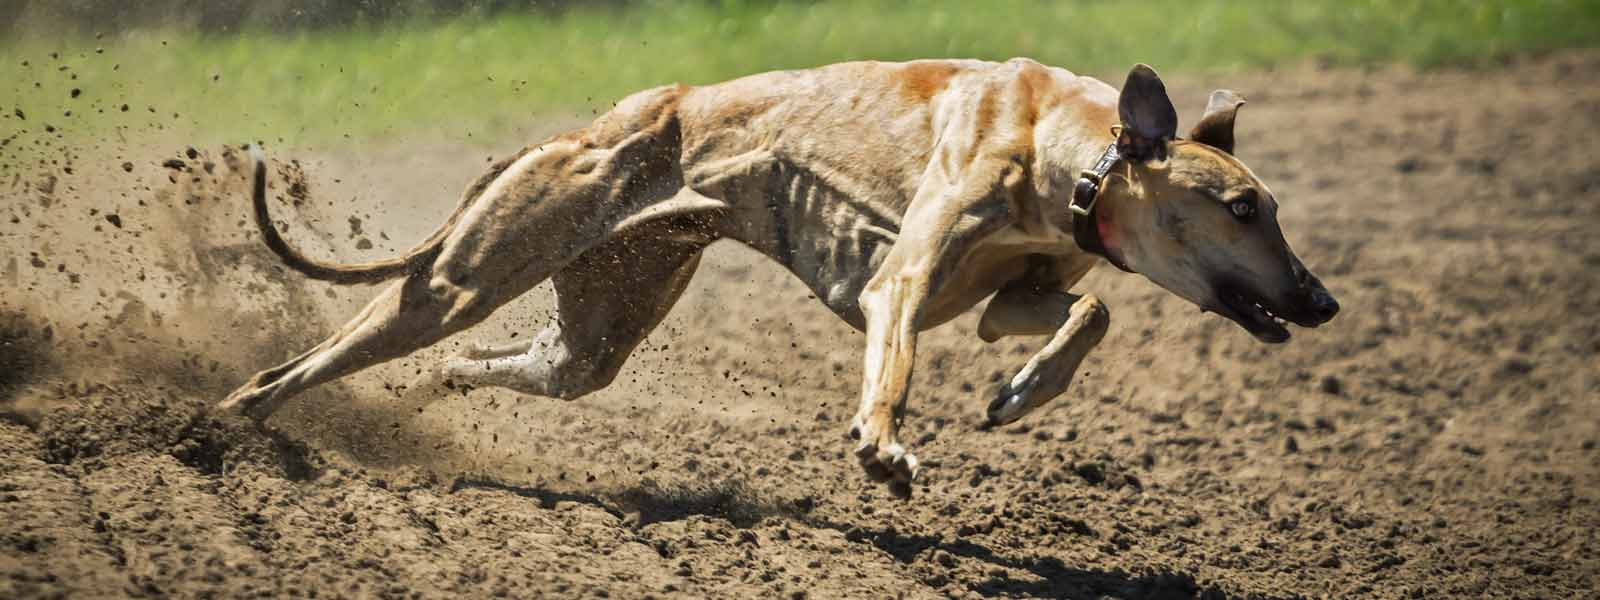 greyhound running fast